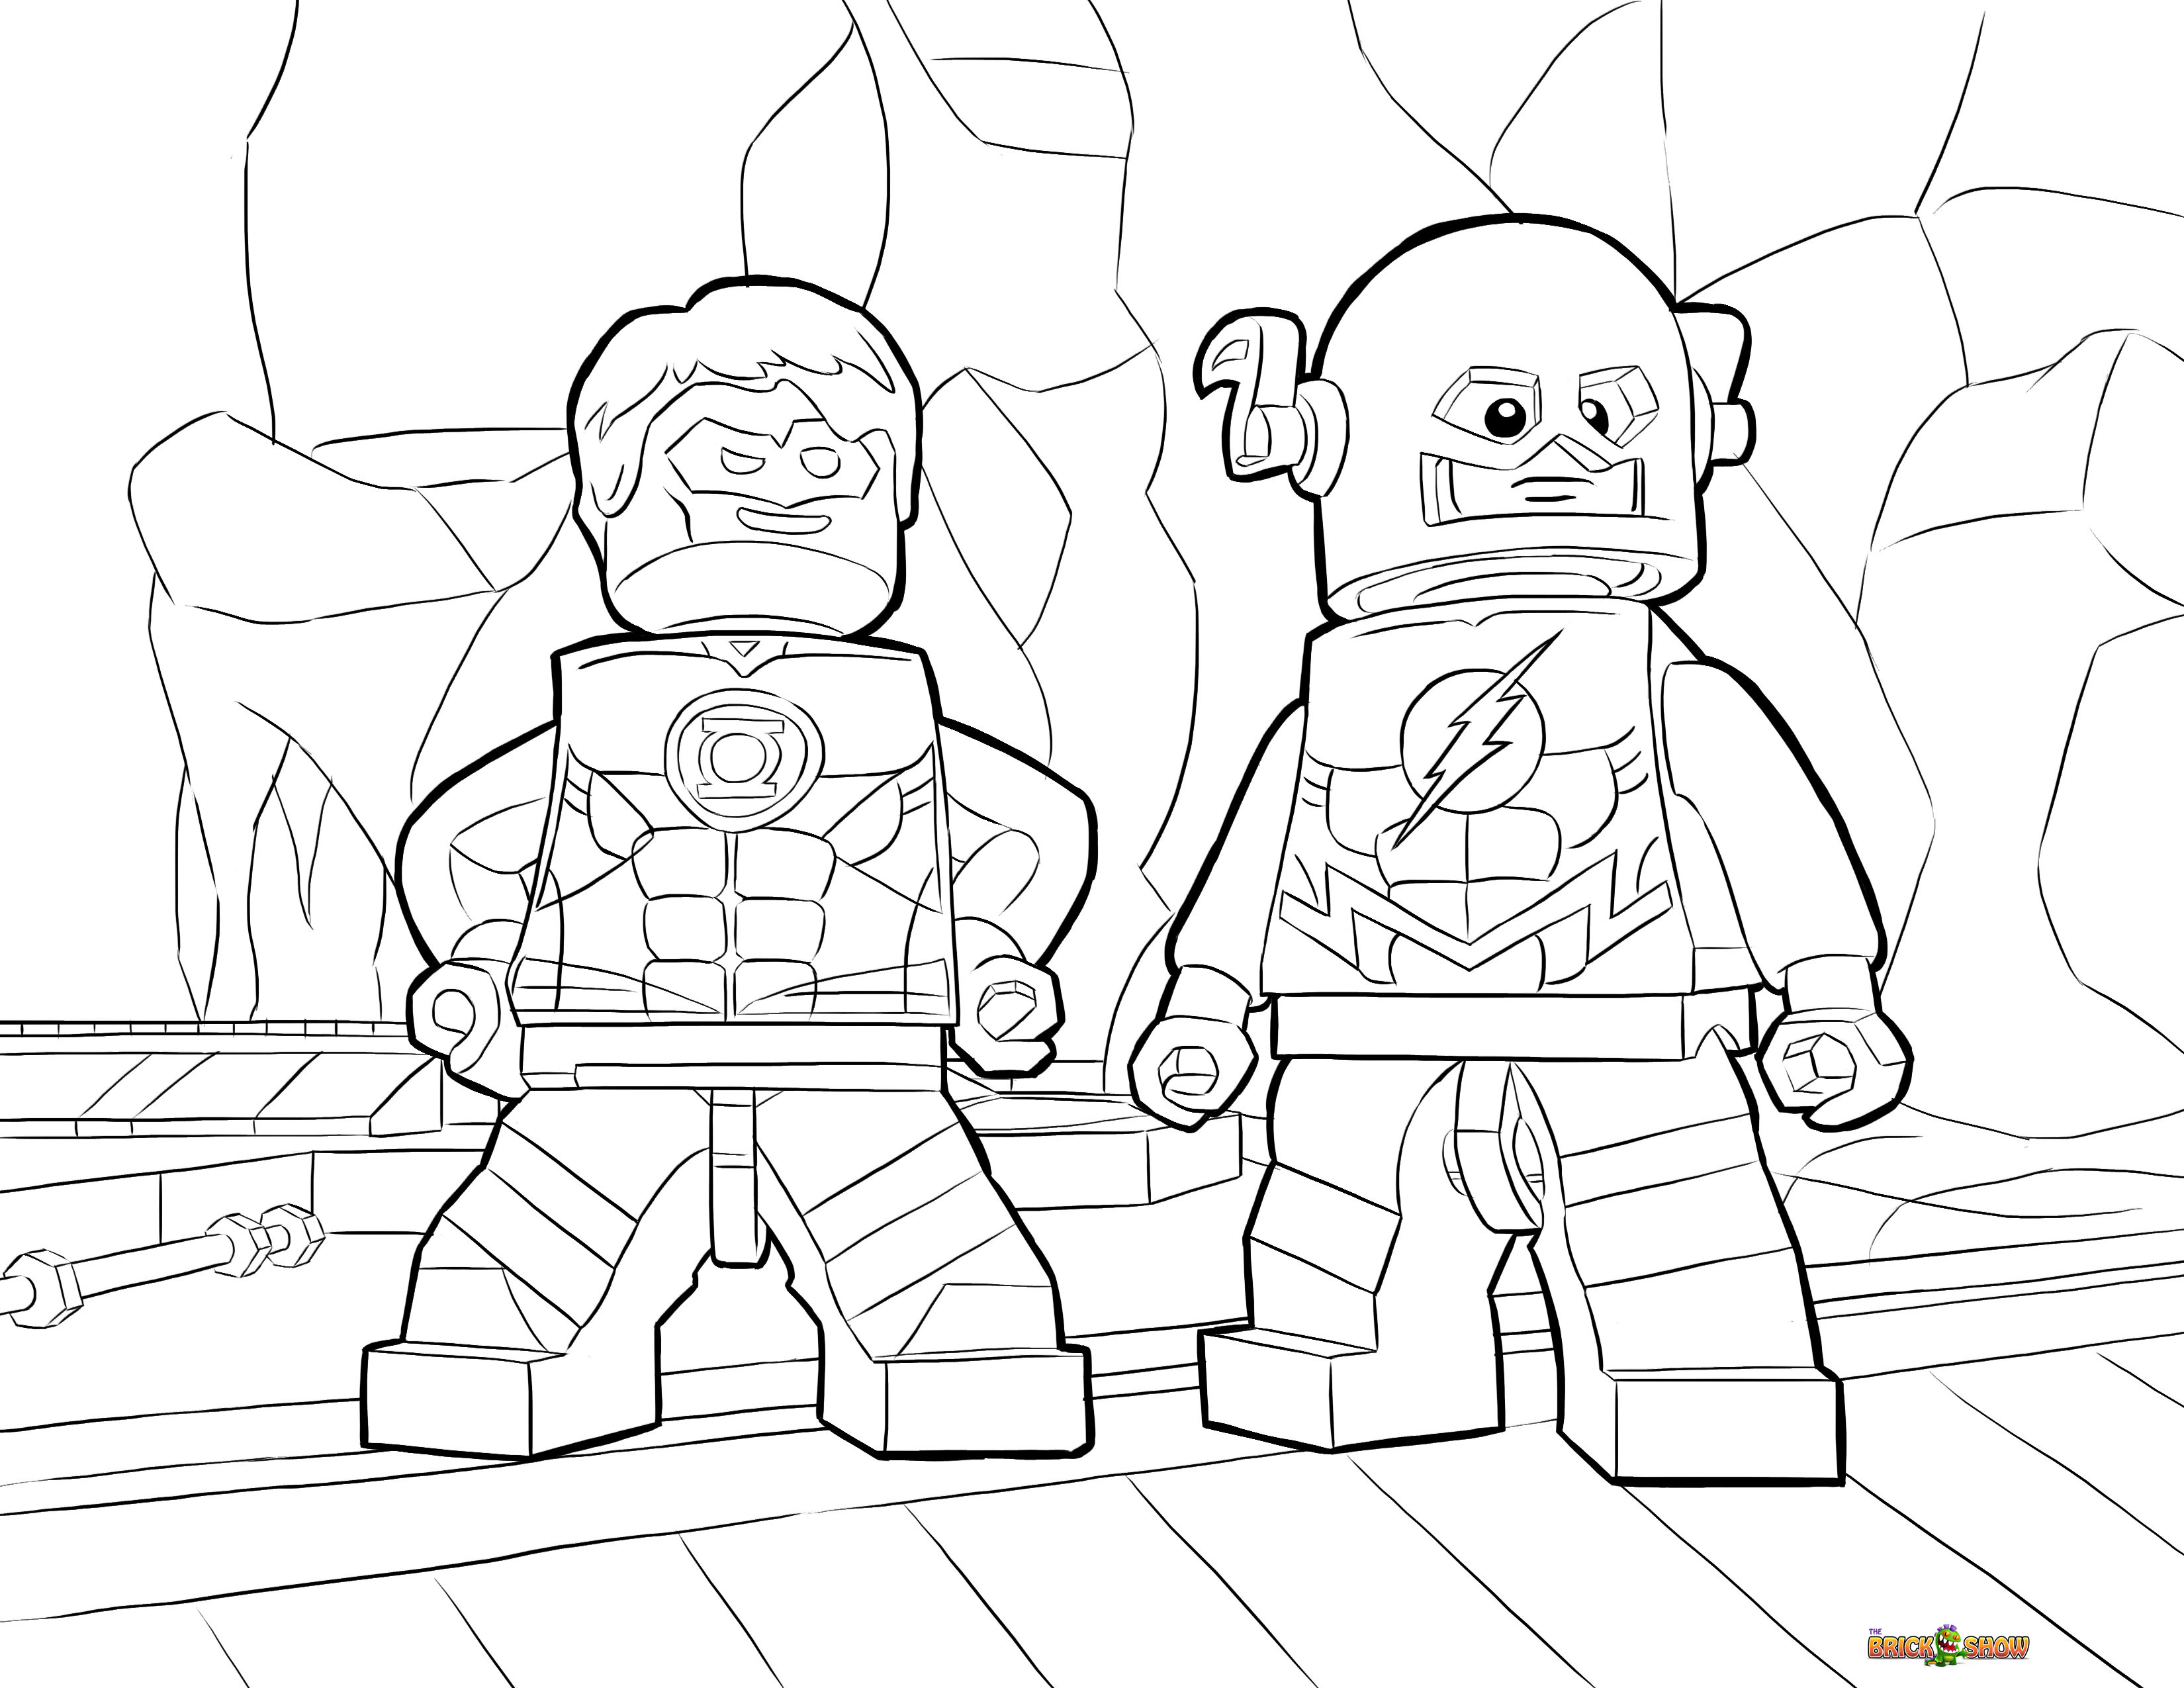 This is a picture of Stupendous Coloring Pages Lego Batman